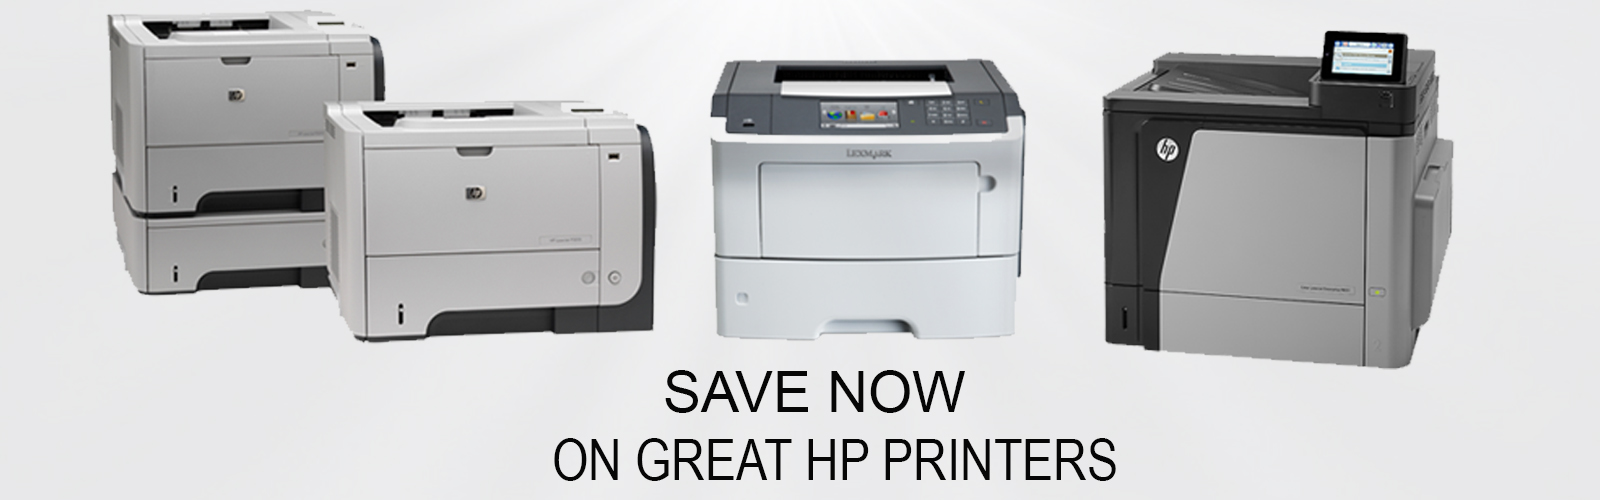 HP Printer AMC Delhi